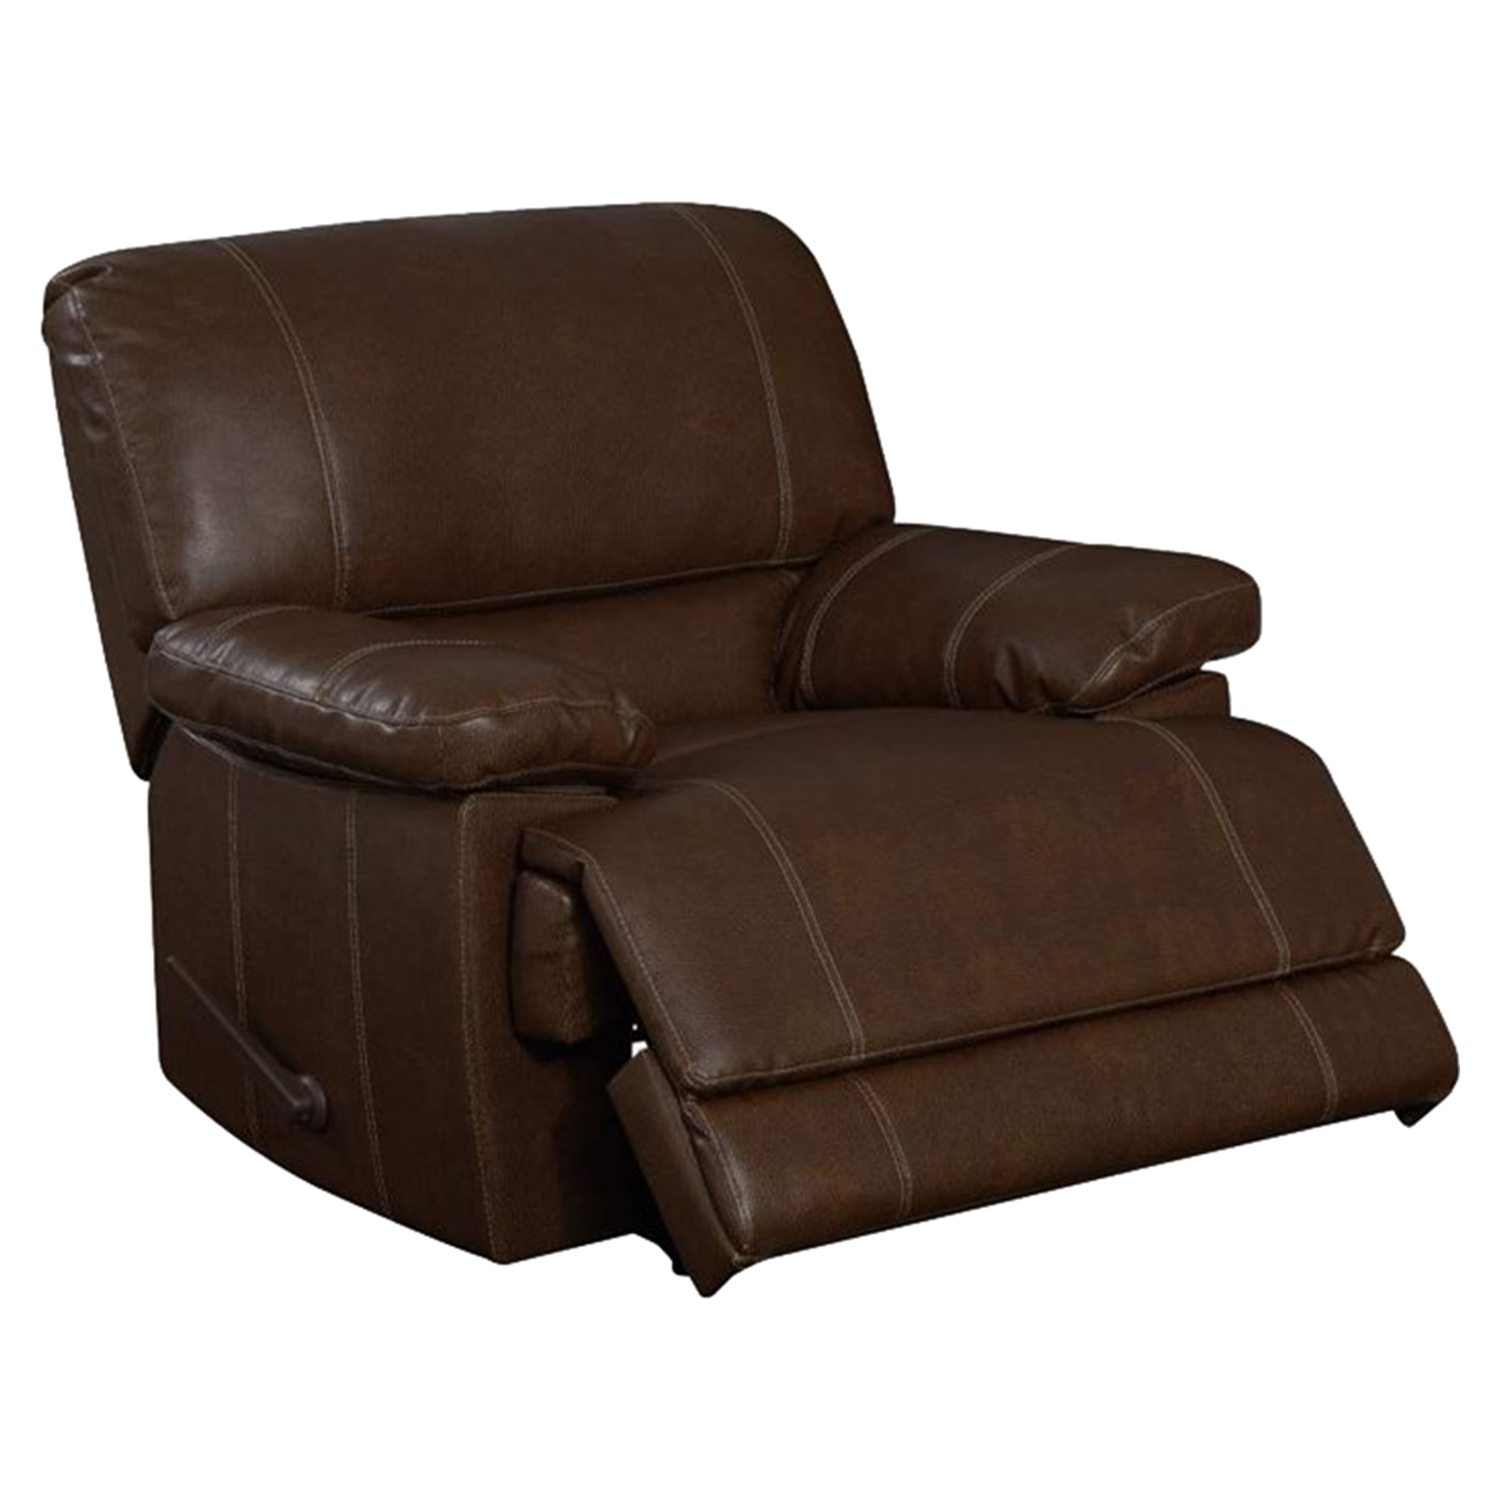 A Glass And Gold Bar Cart Brown Leather Armchair And: Rodeo Rocker Recliner Chair, Brown Leather